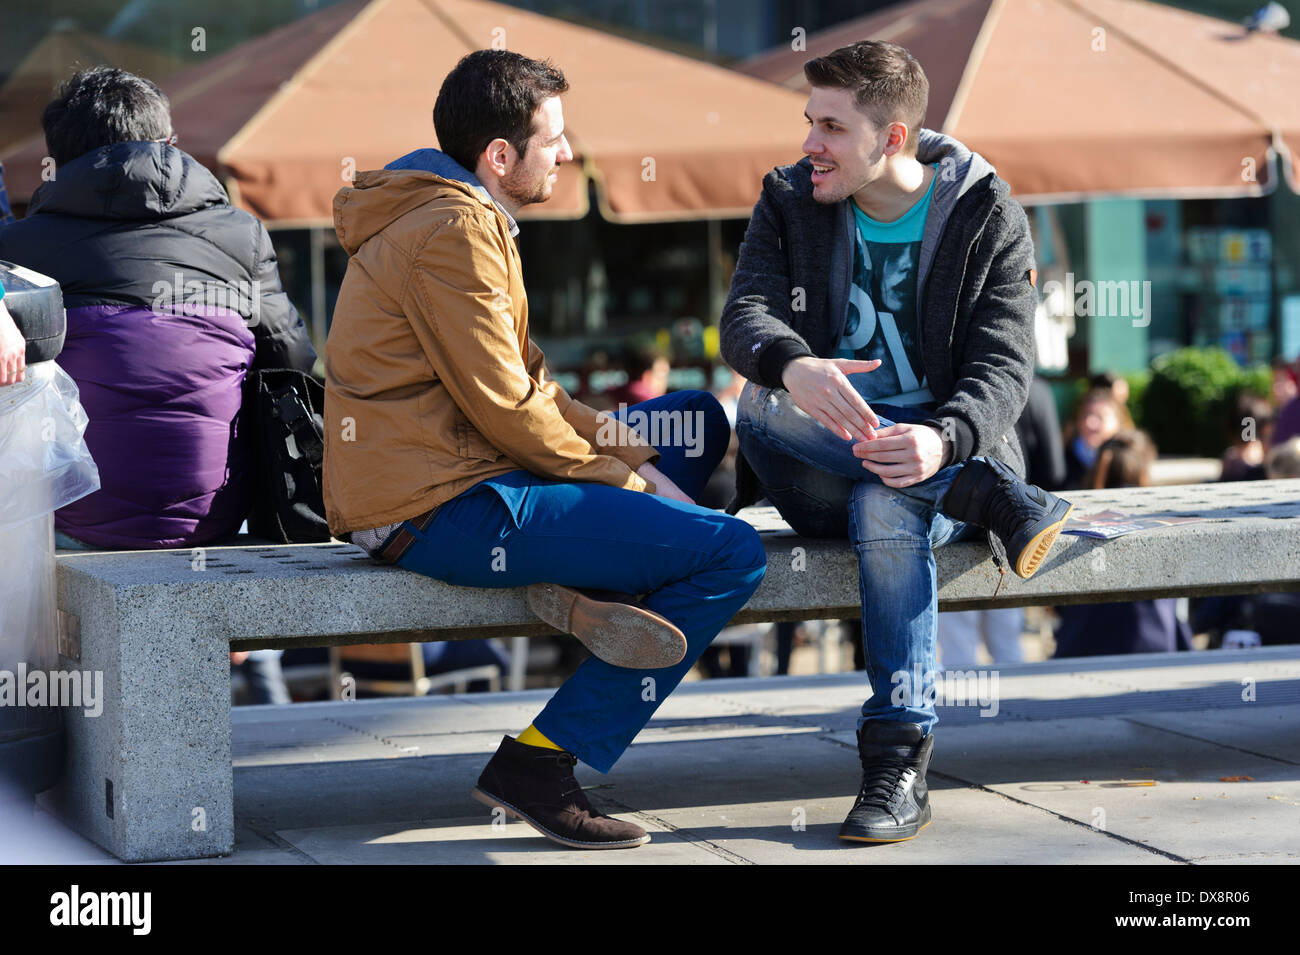 Two young men sitting on a concert bench dressed in winter